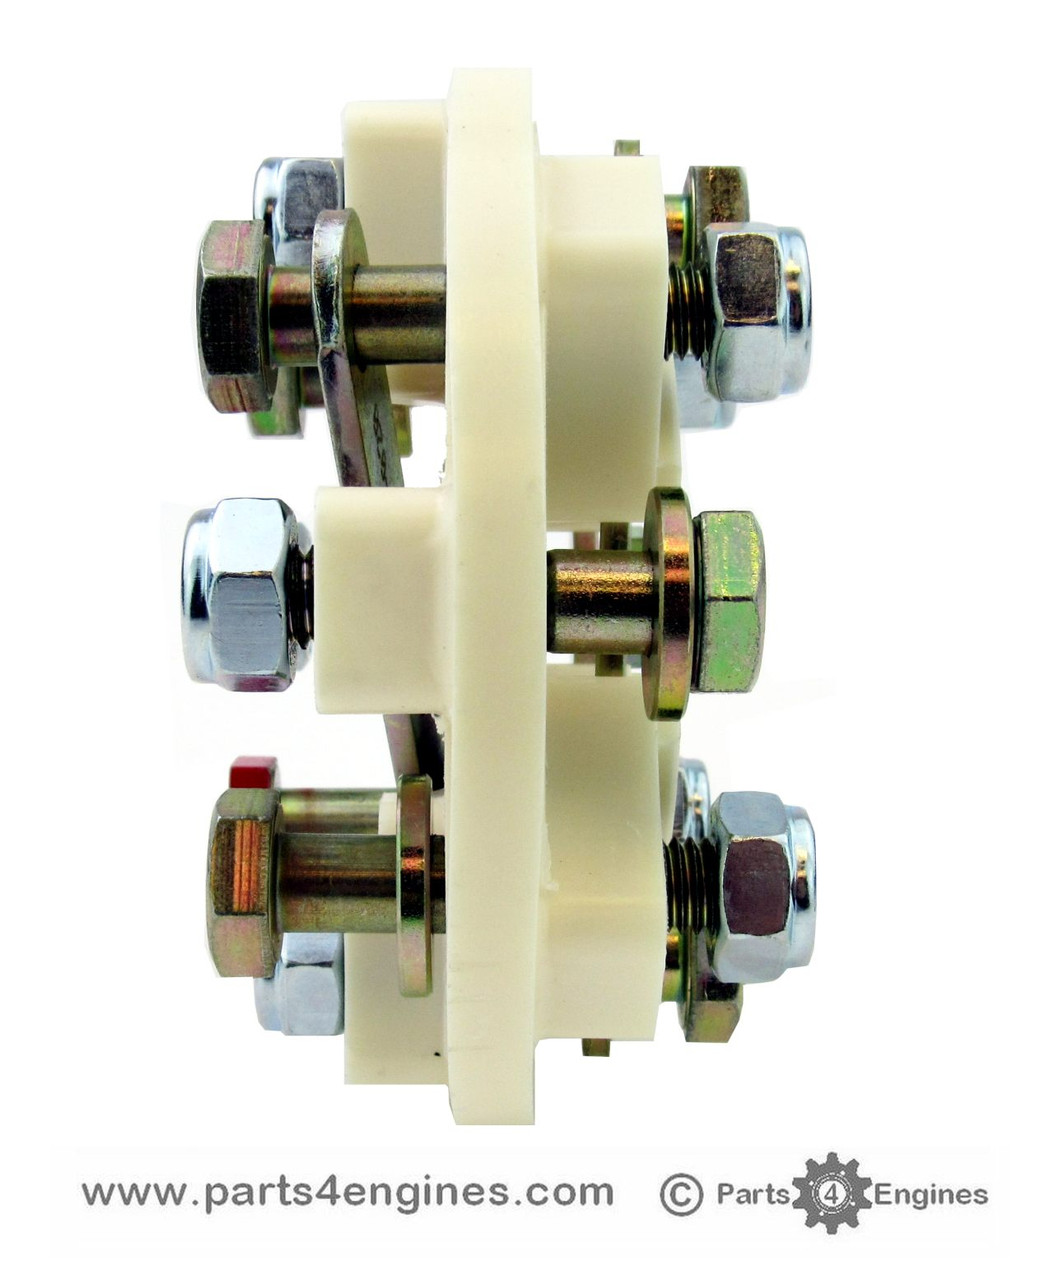 Volvo Penta Flexible shaft Coupling, from parts4engines.com